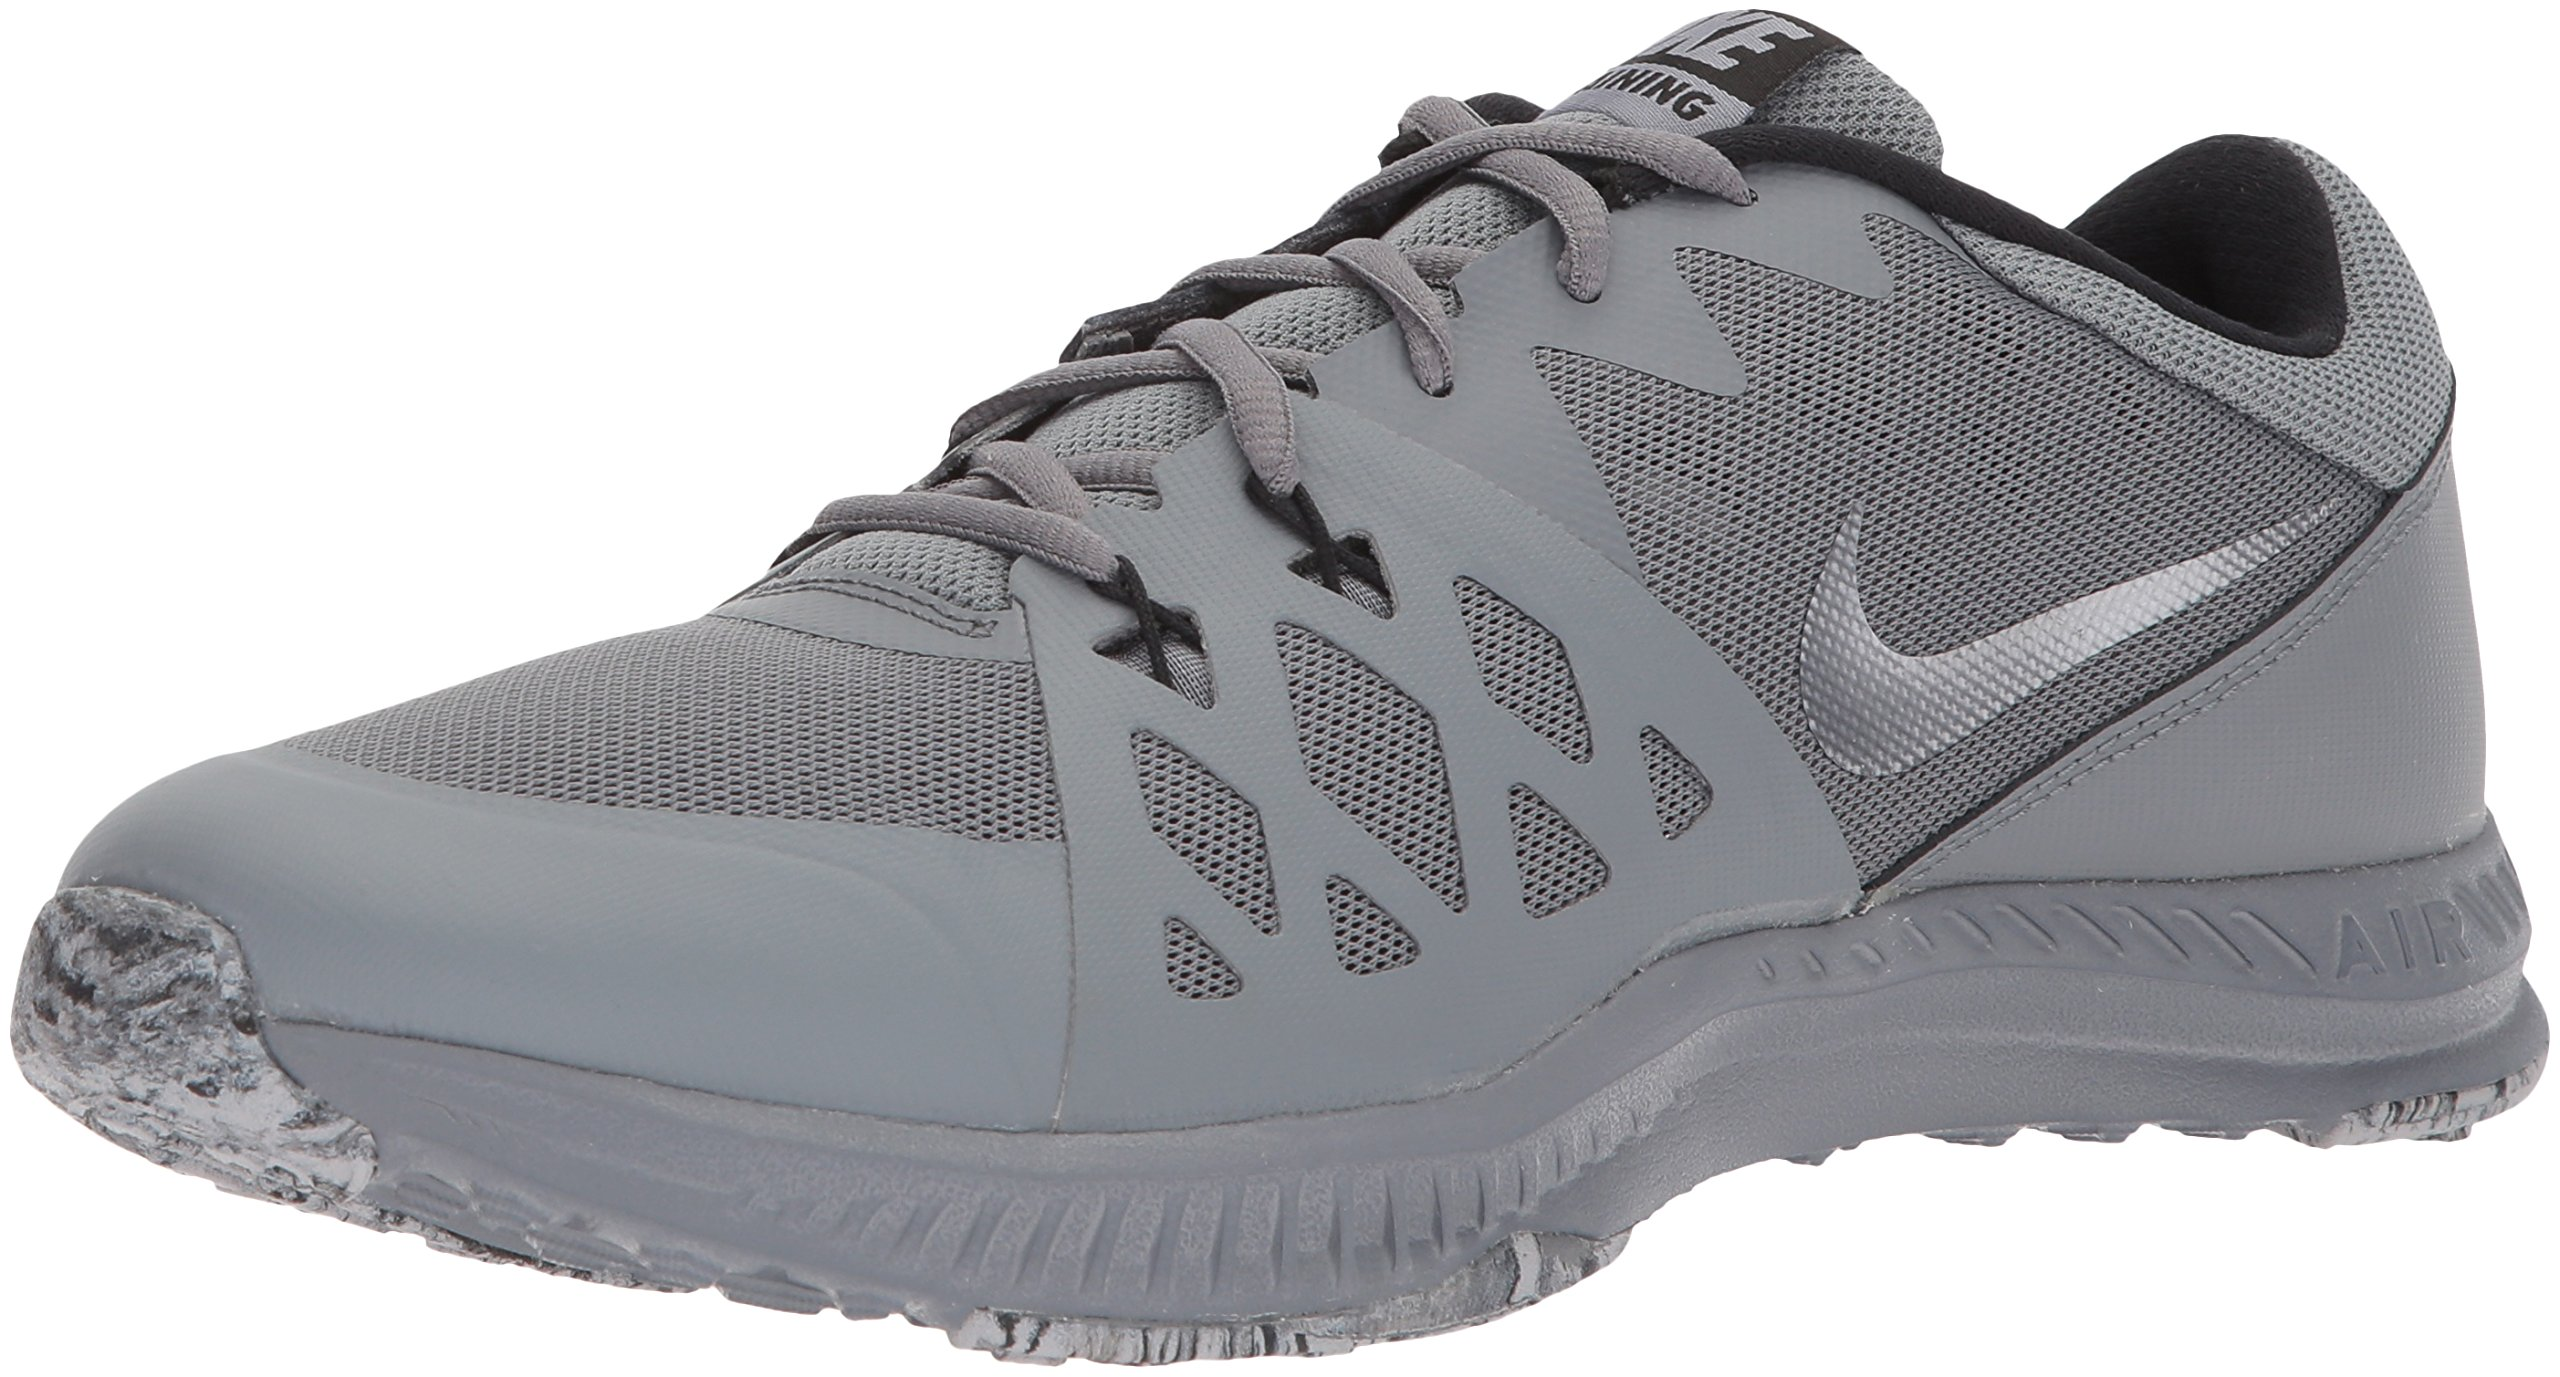 Conception innovante e4fc0 7178d Nike Men's Air Epic TR II Cross Trainer, Cool Grey/Black/Speed Red, 13 D(M)  US